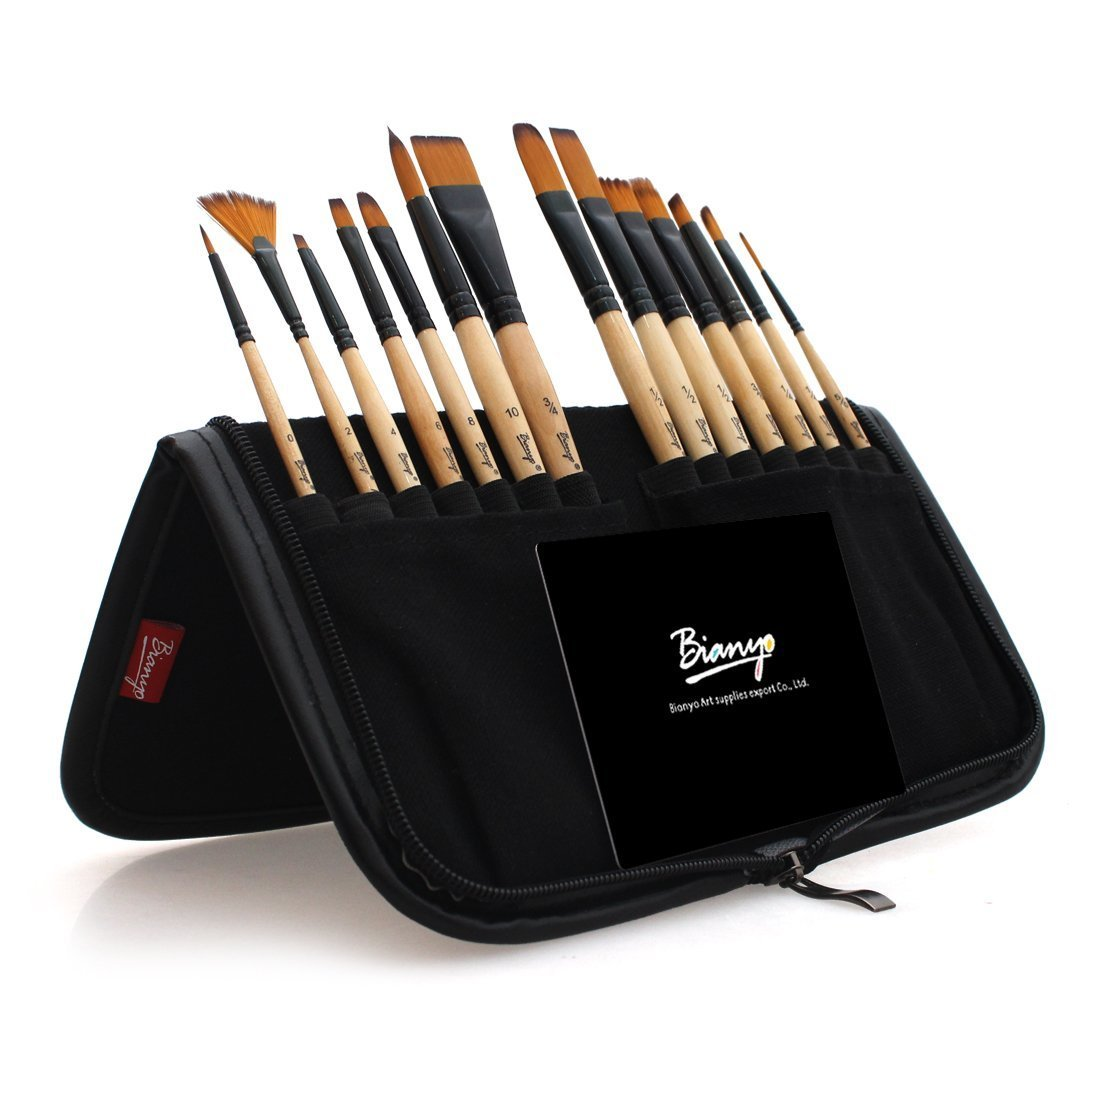 Bianyo Paint Brushes for Acrylic Painting - 14pcs Nylon Brush Set for Watercolor, Oil and Plein Air Painting - Carrying Case with Holder 4336960781